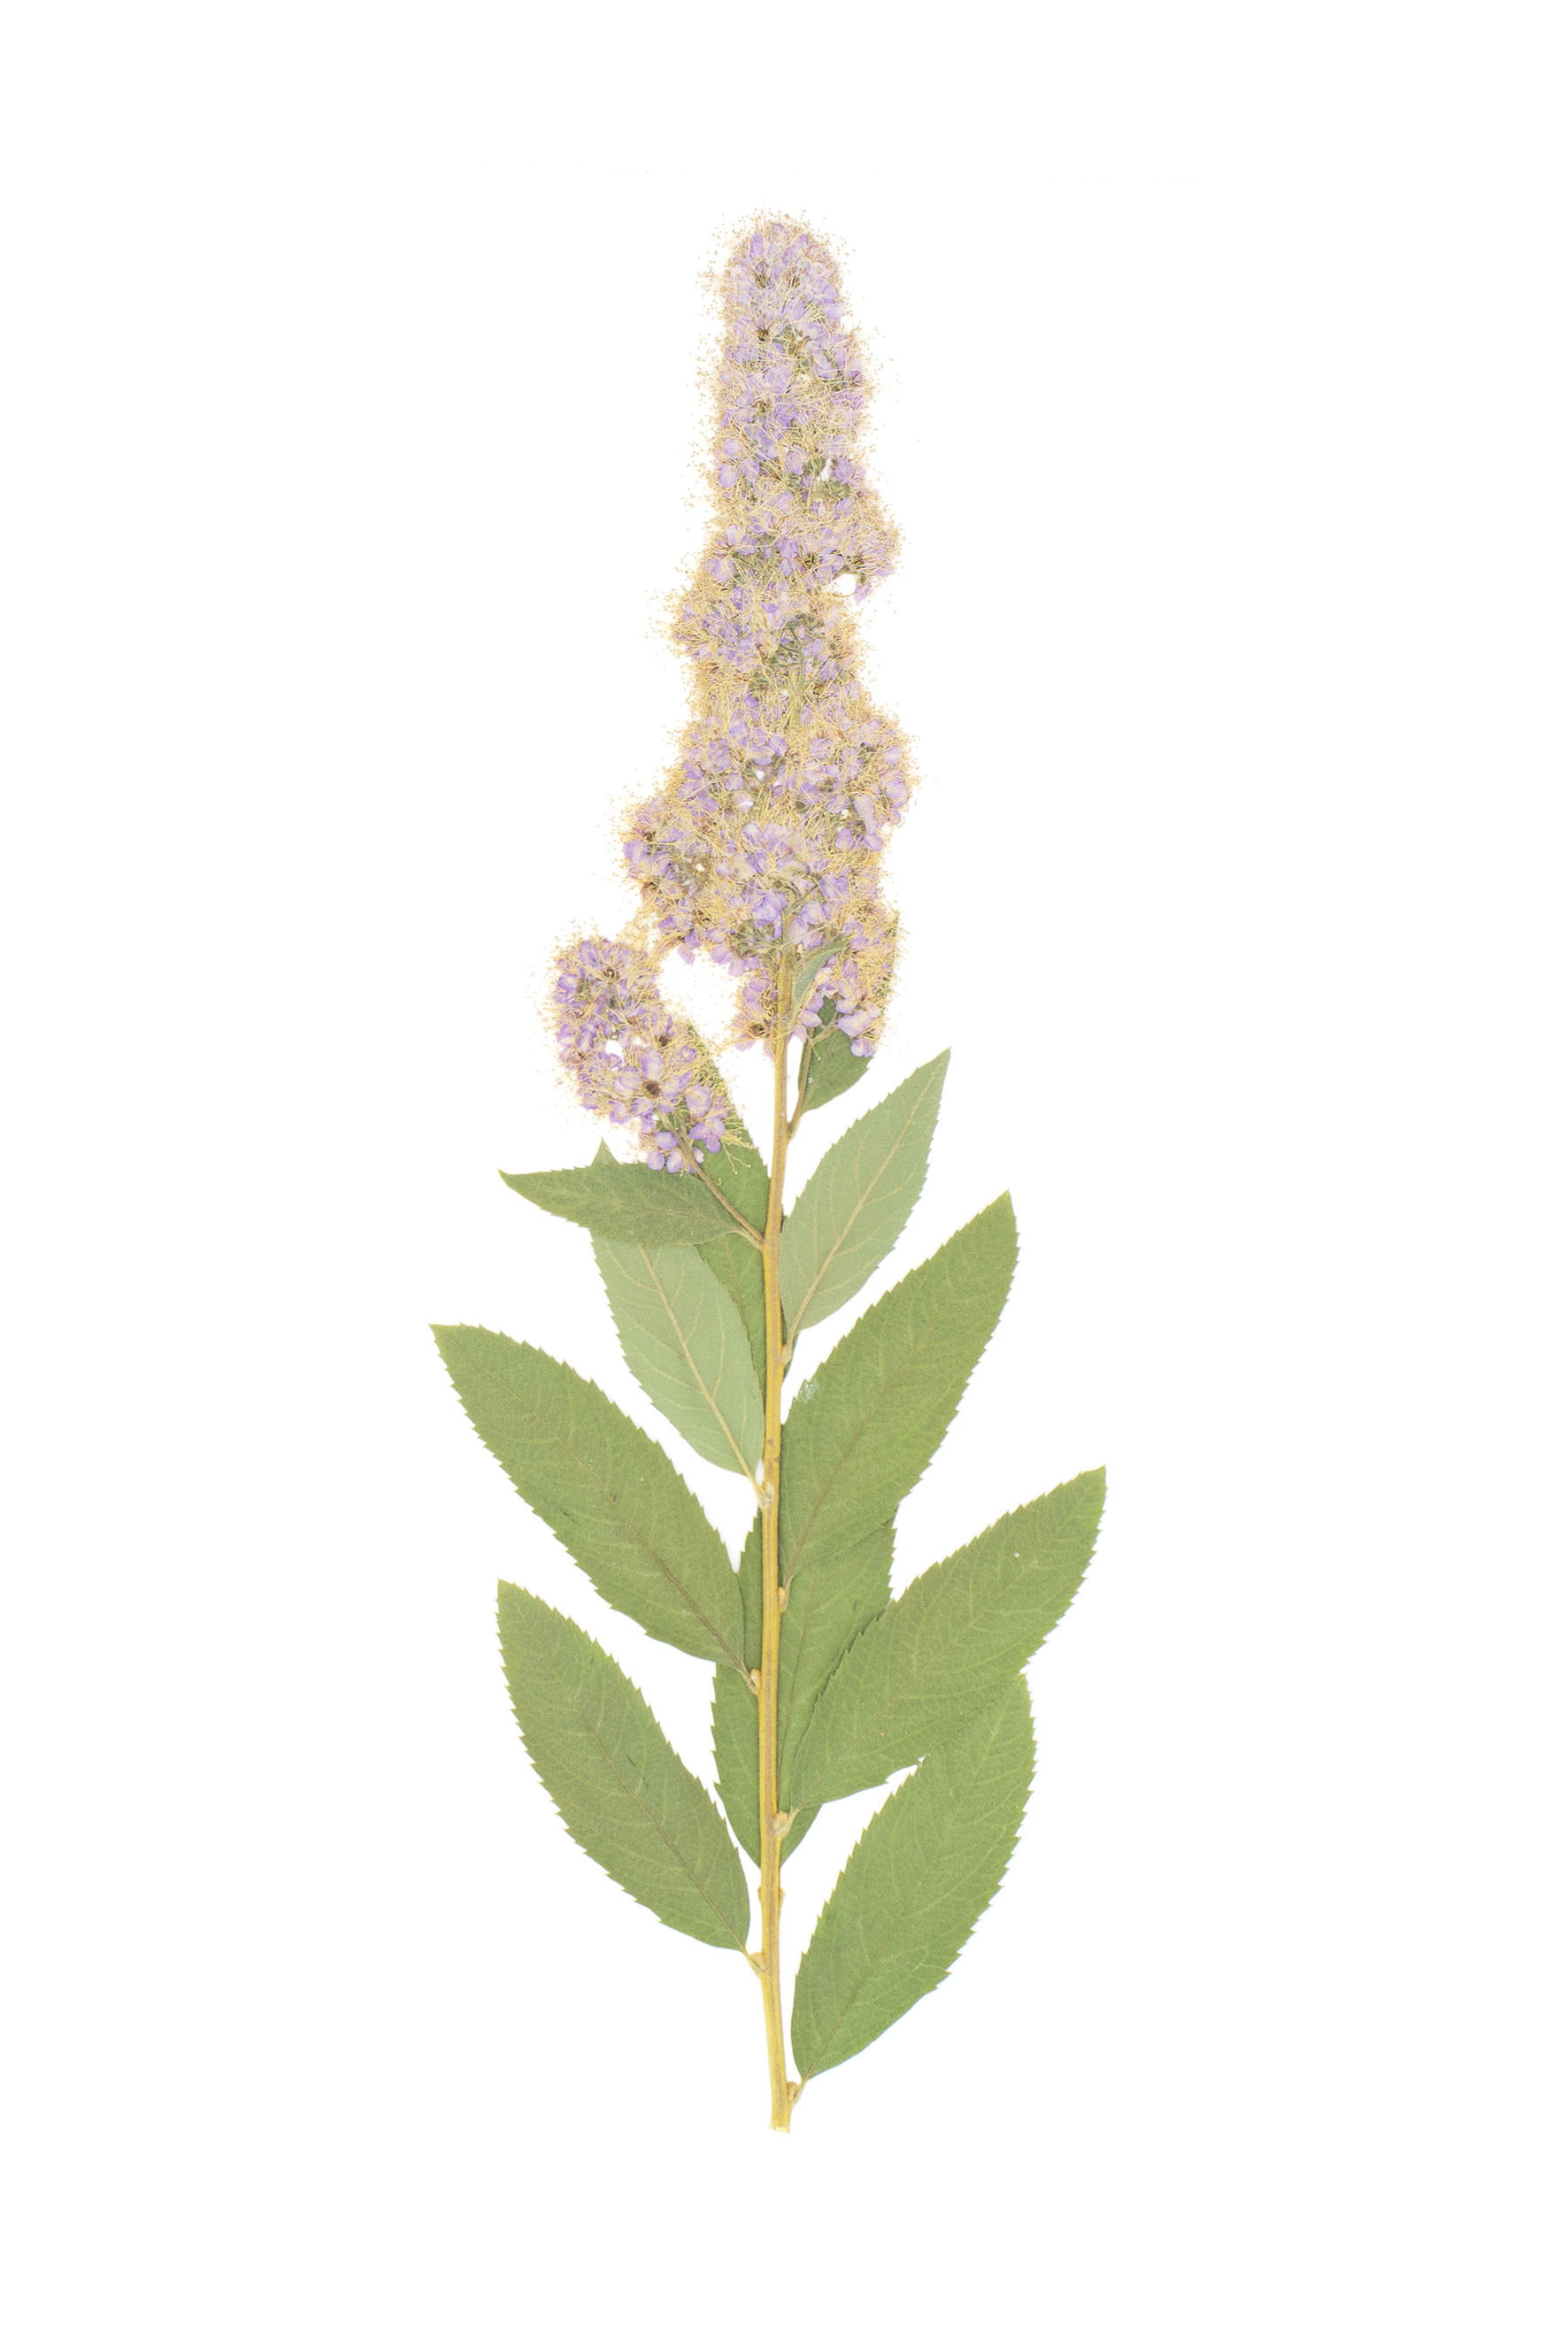 New! Spiraea salicifolia / Willowleaf Meadowsweet